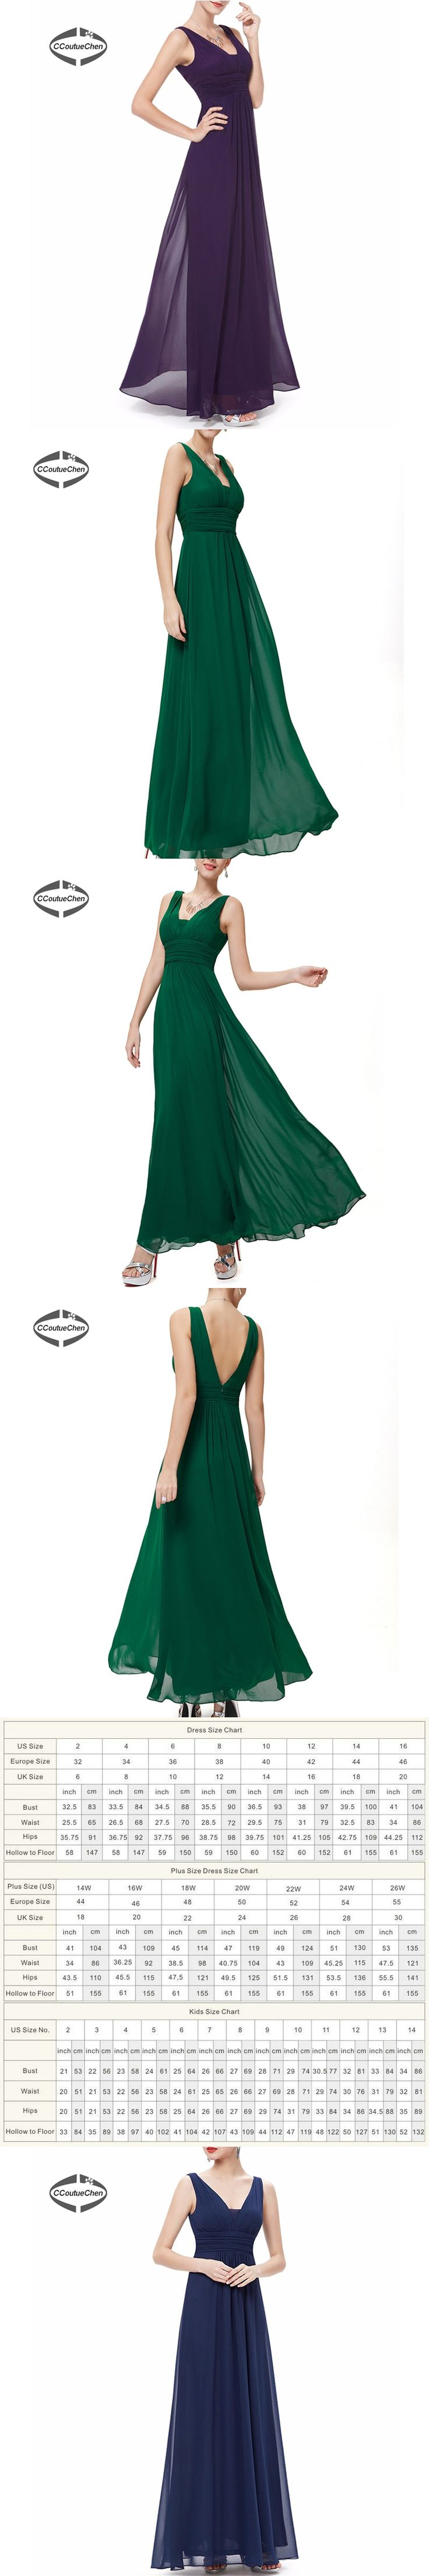 V Neck Sleeveless Ankle Length Bridesmaid Dresses Long with Bra Party Dresses Zipper Back Gown For Big Event Silk Chiffon SARA-4